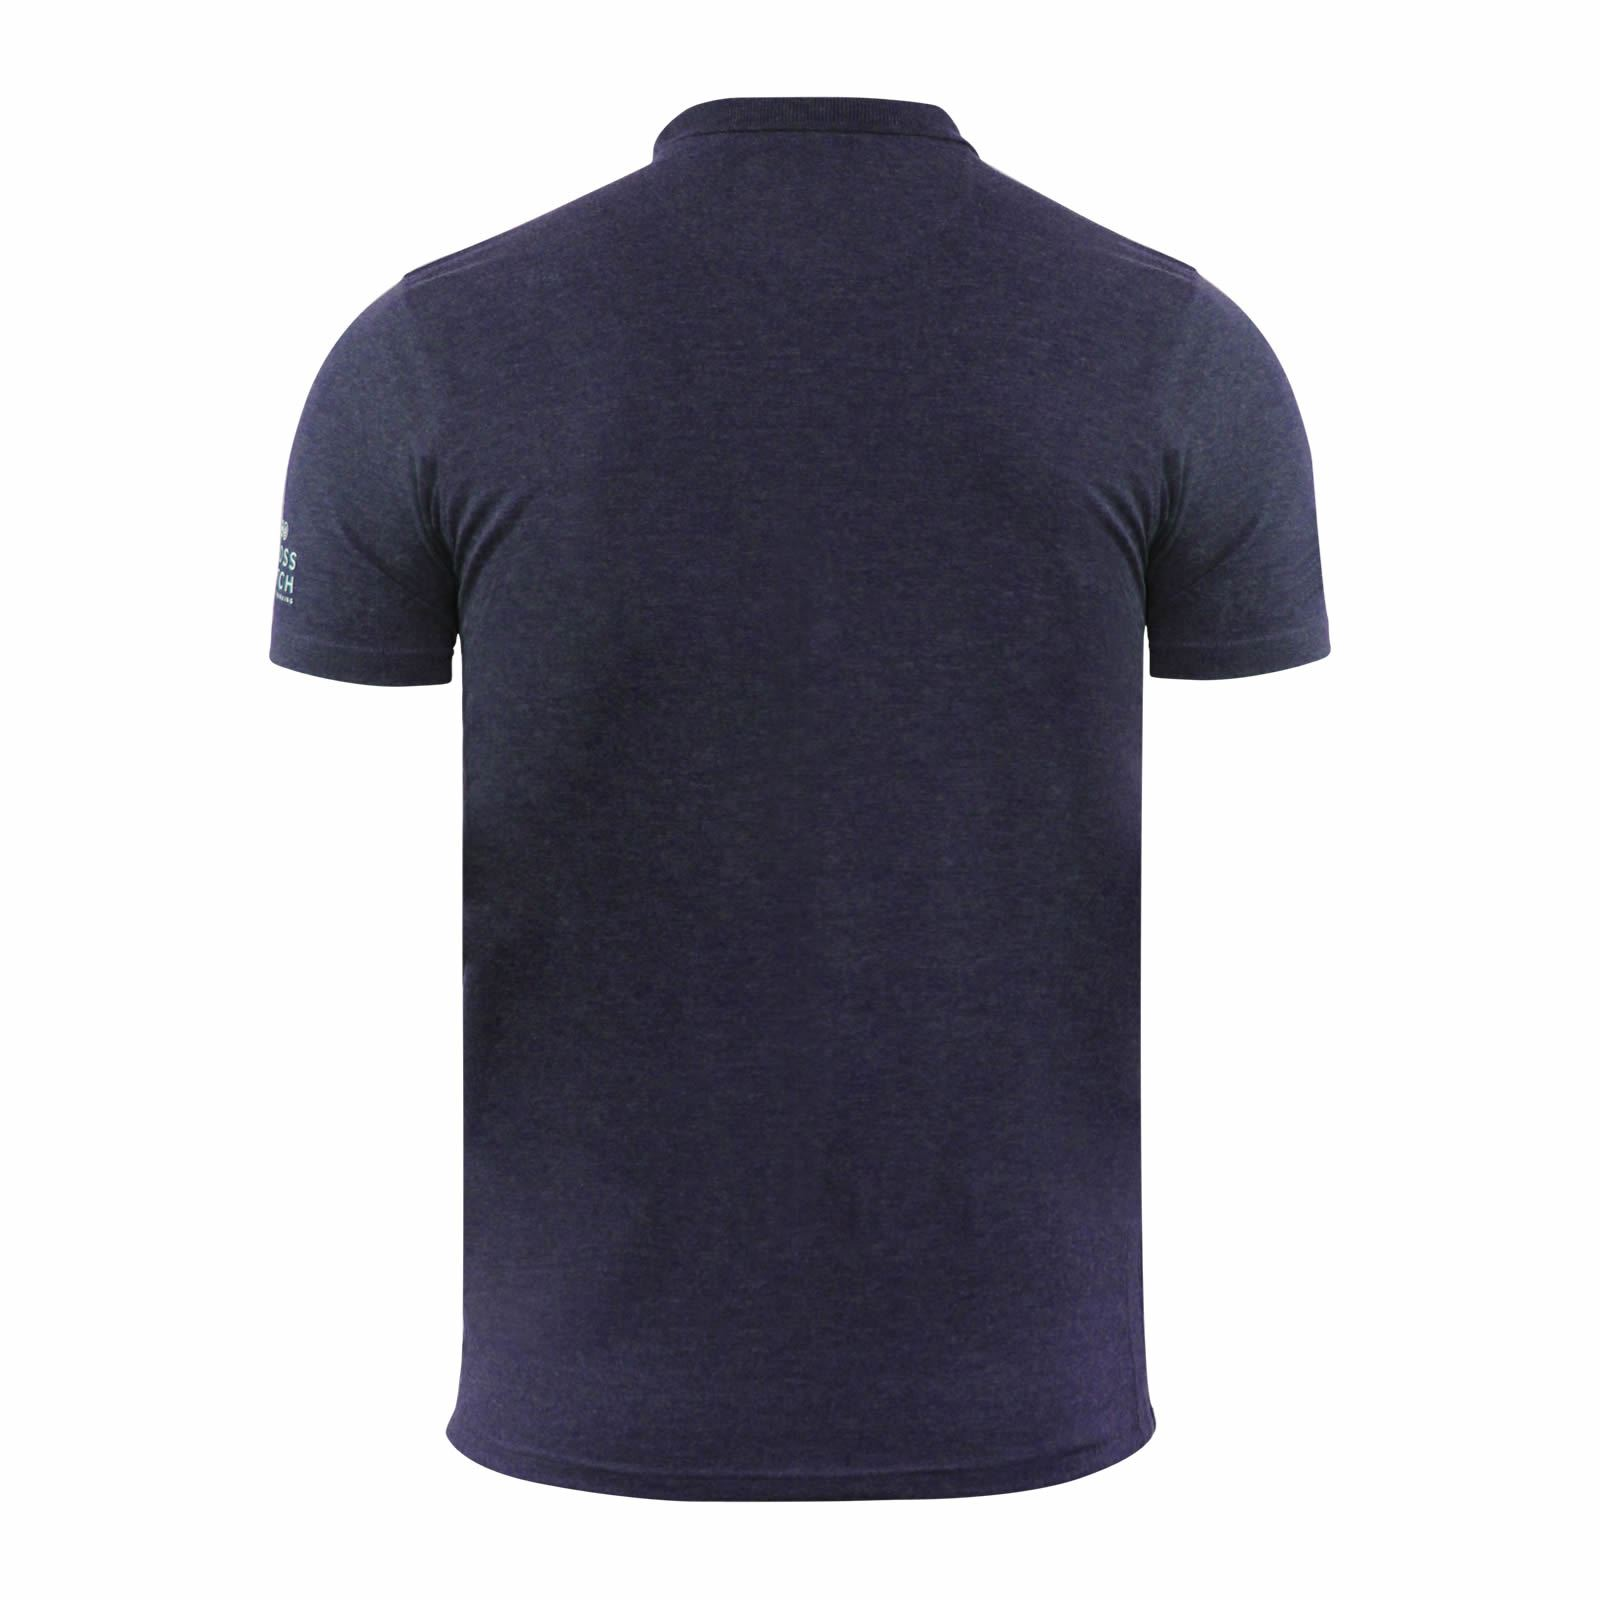 Crosshatch-Mens-Polo-T-Shirt-Pique-Polo-Cotton-Collared-Short-Sleeve-T-Shirt thumbnail 51